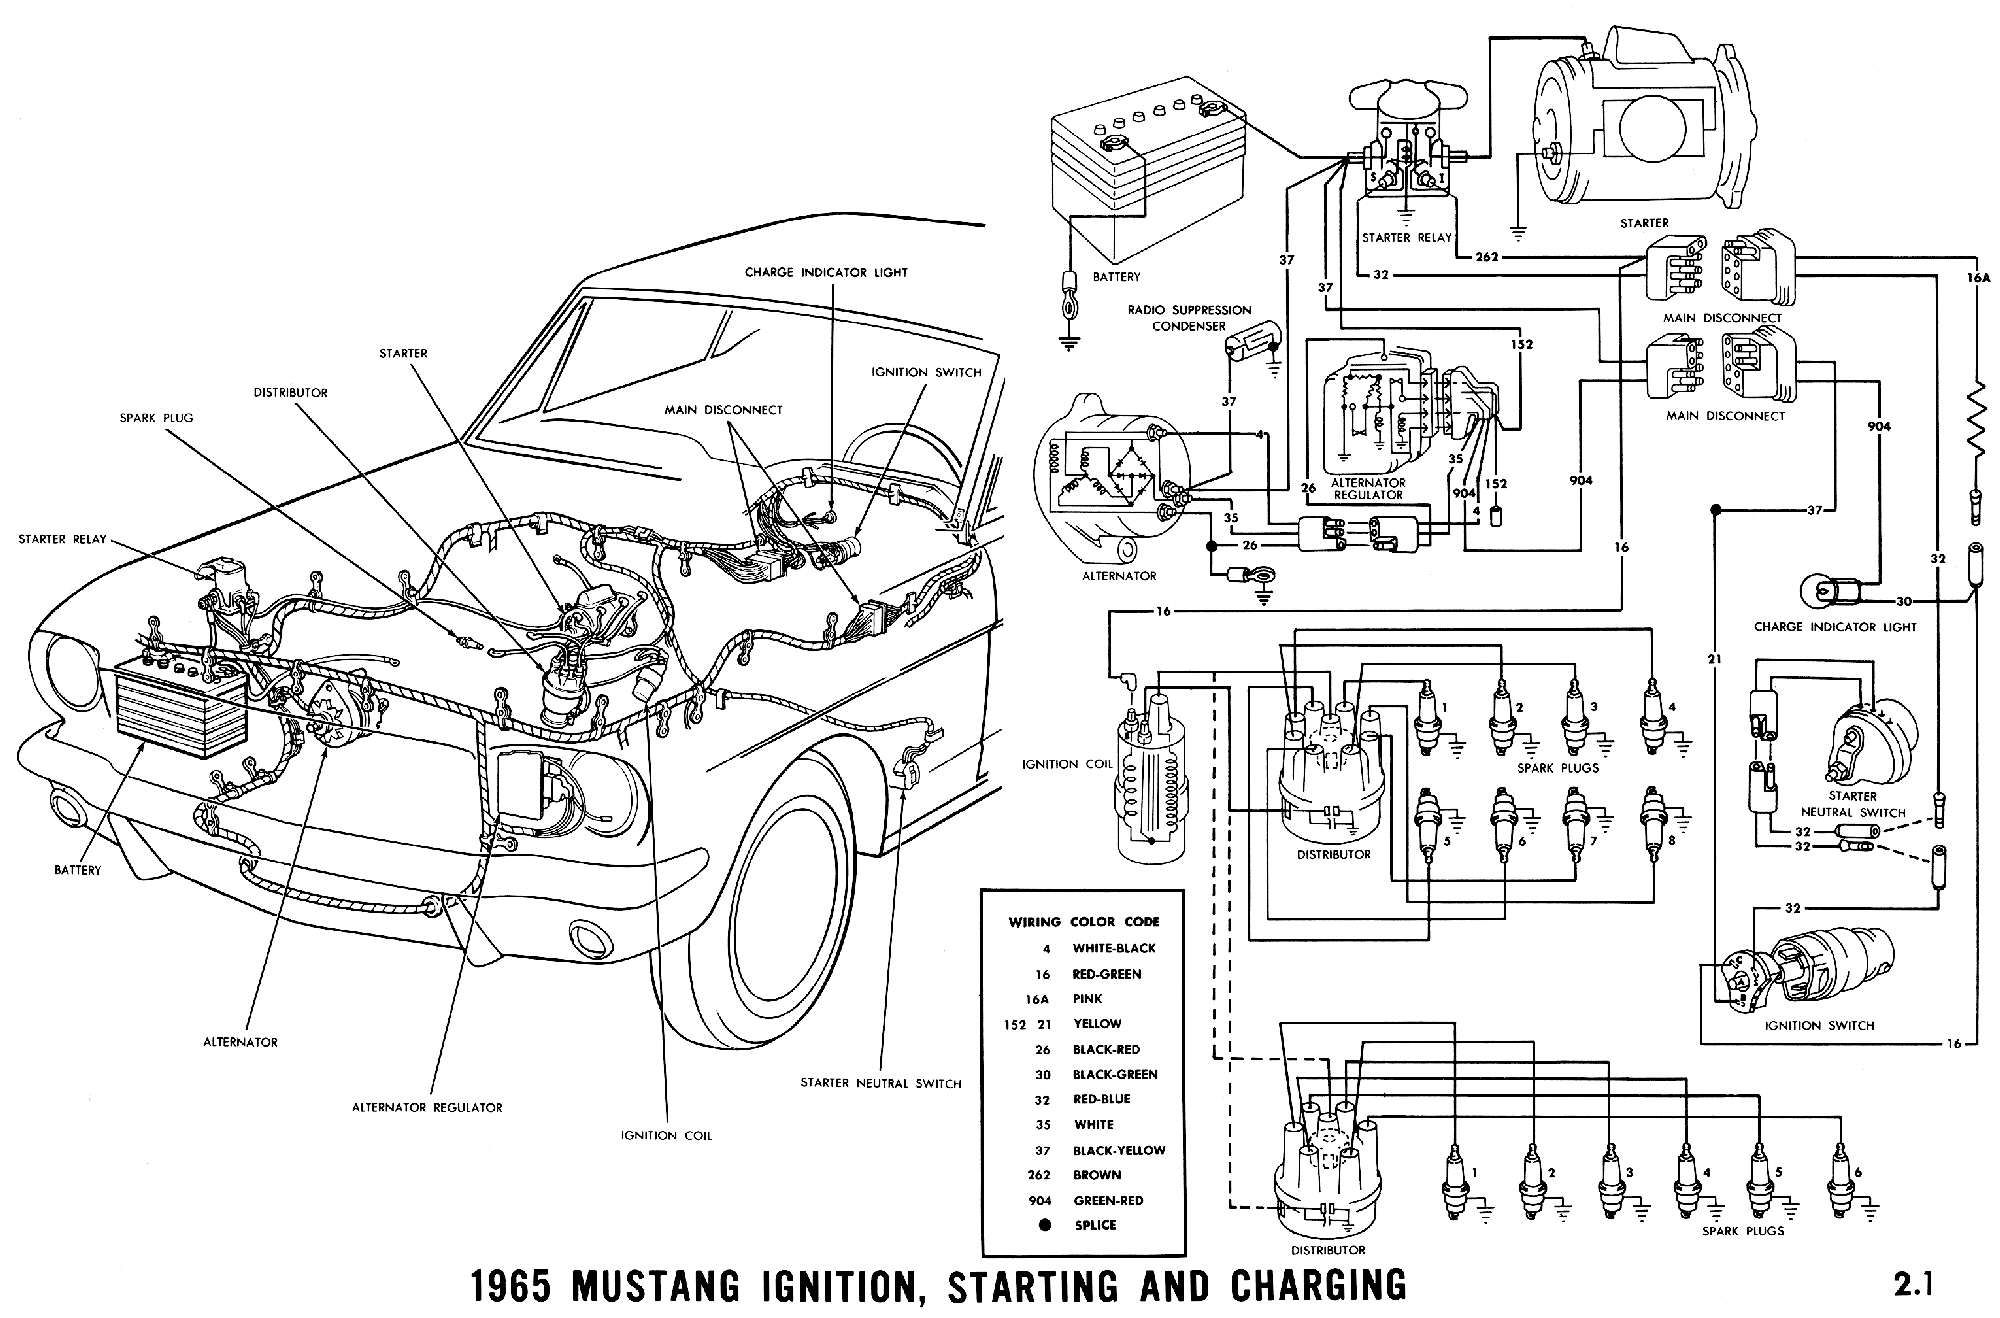 2b4c8d3809962afcbebfb7e8a60704ce 1965 mustang wiring diagrams average joe restoration mustang Ford Alternator Wiring Diagram at aneh.co